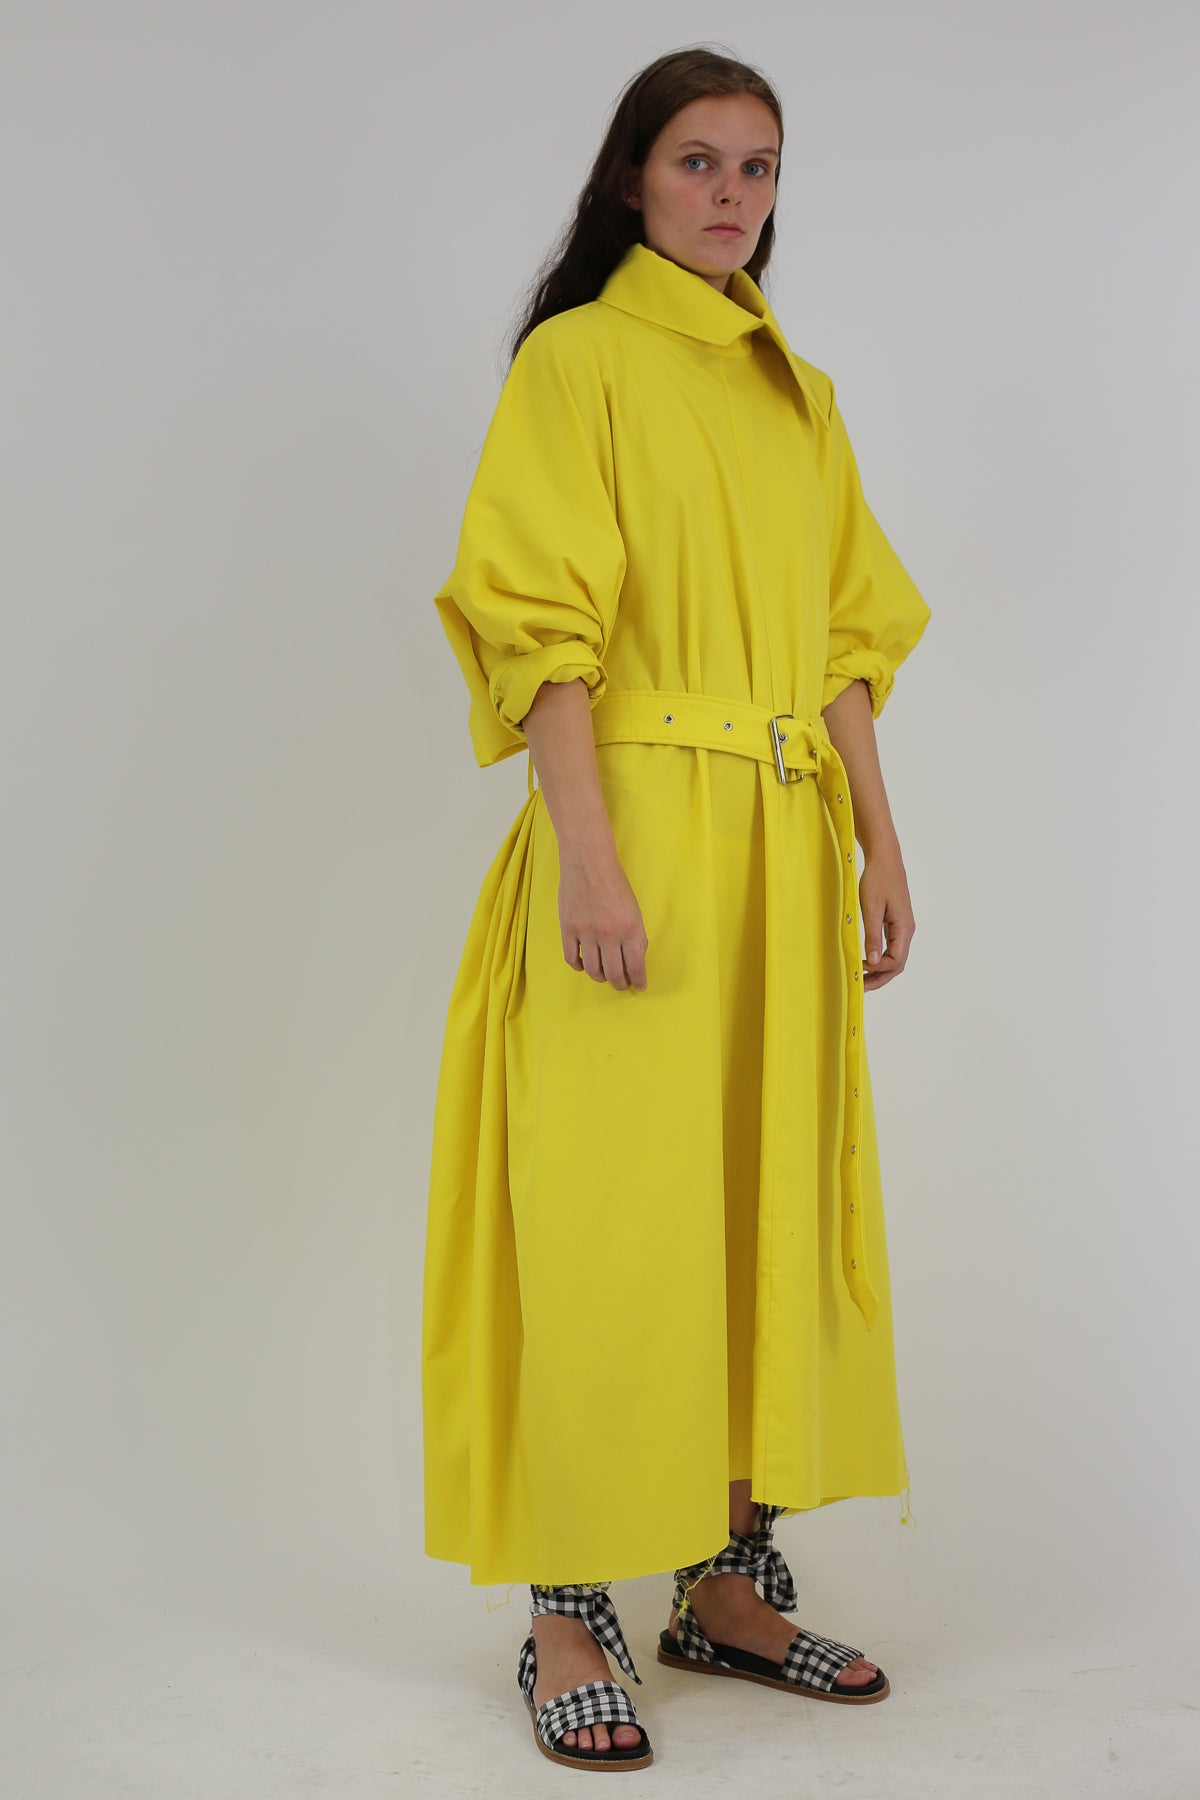 YELLOW COTTON RECTANGLE TUNIC DRESS